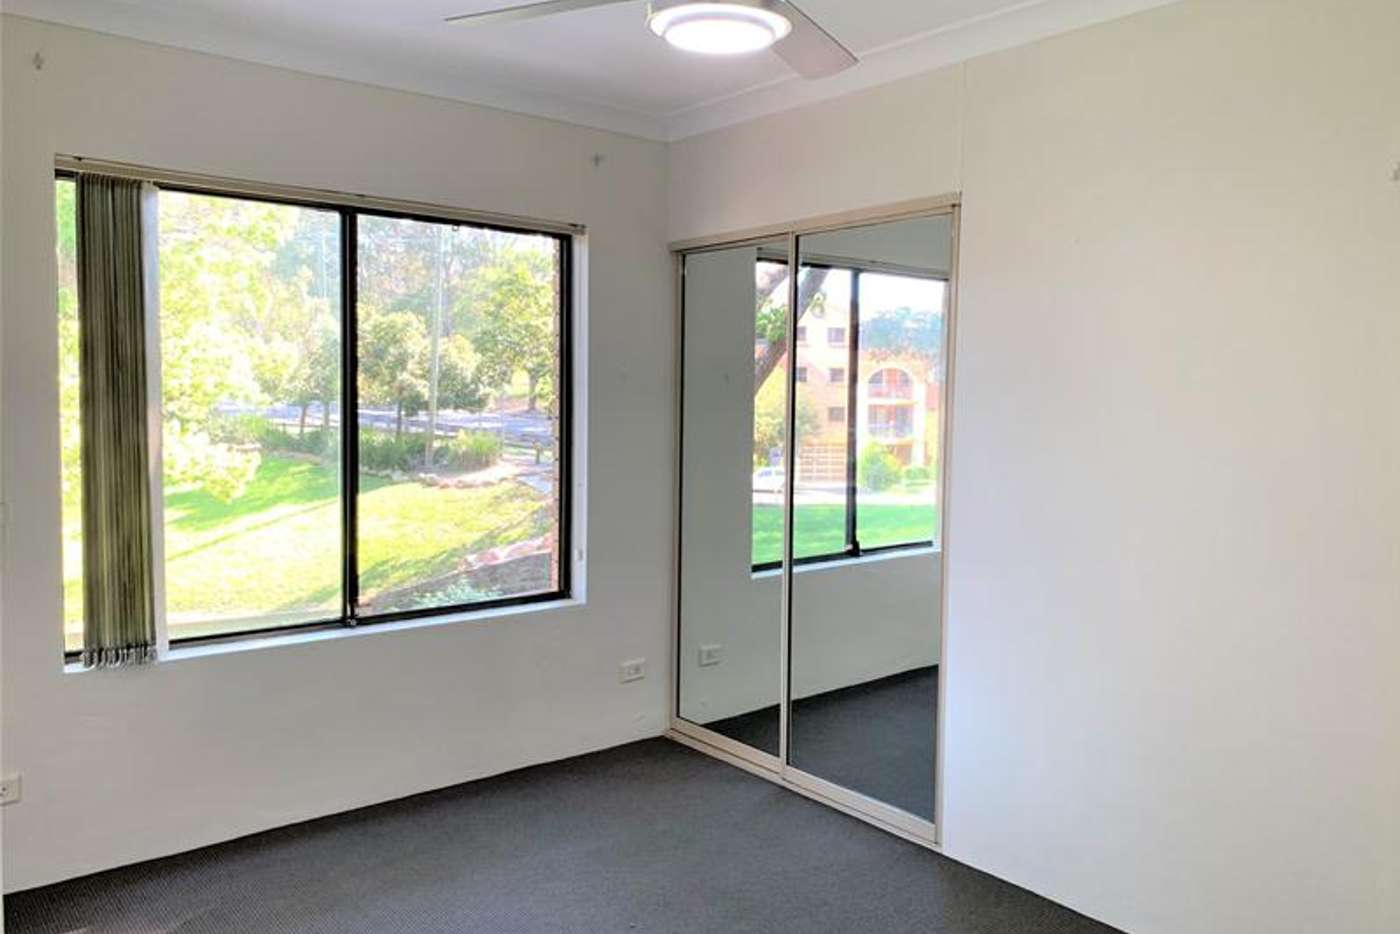 Sixth view of Homely apartment listing, 15/26 Pennant HIlls Road, North Parramatta NSW 2151